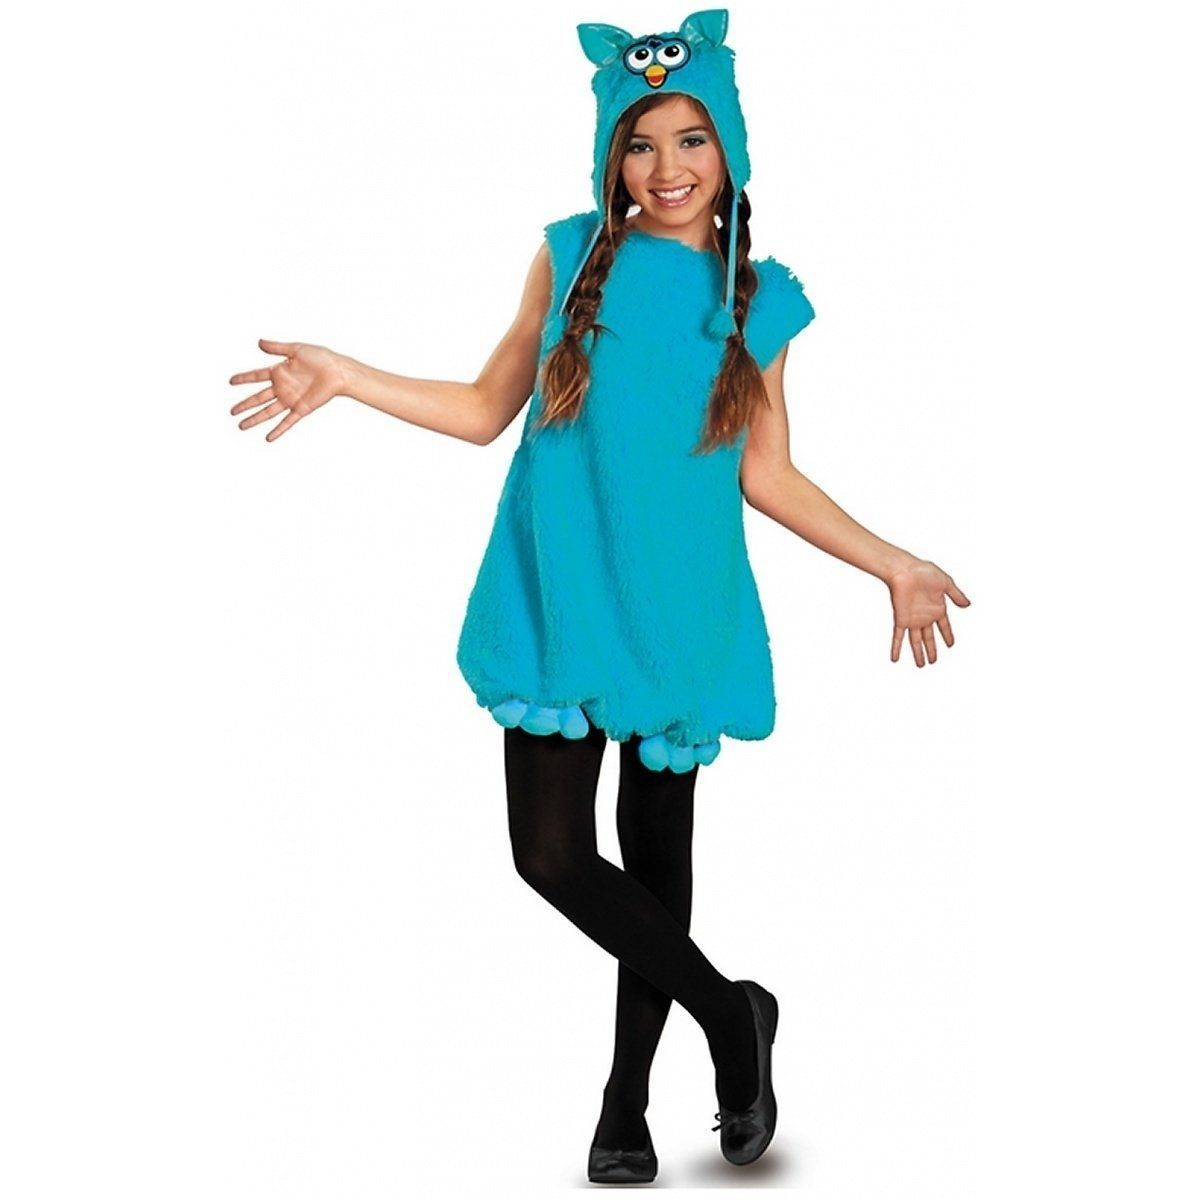 Fun Teal Voodoo Furby Deluxe Trendy Tween Costume by Disguise - Teal Blue - Poly